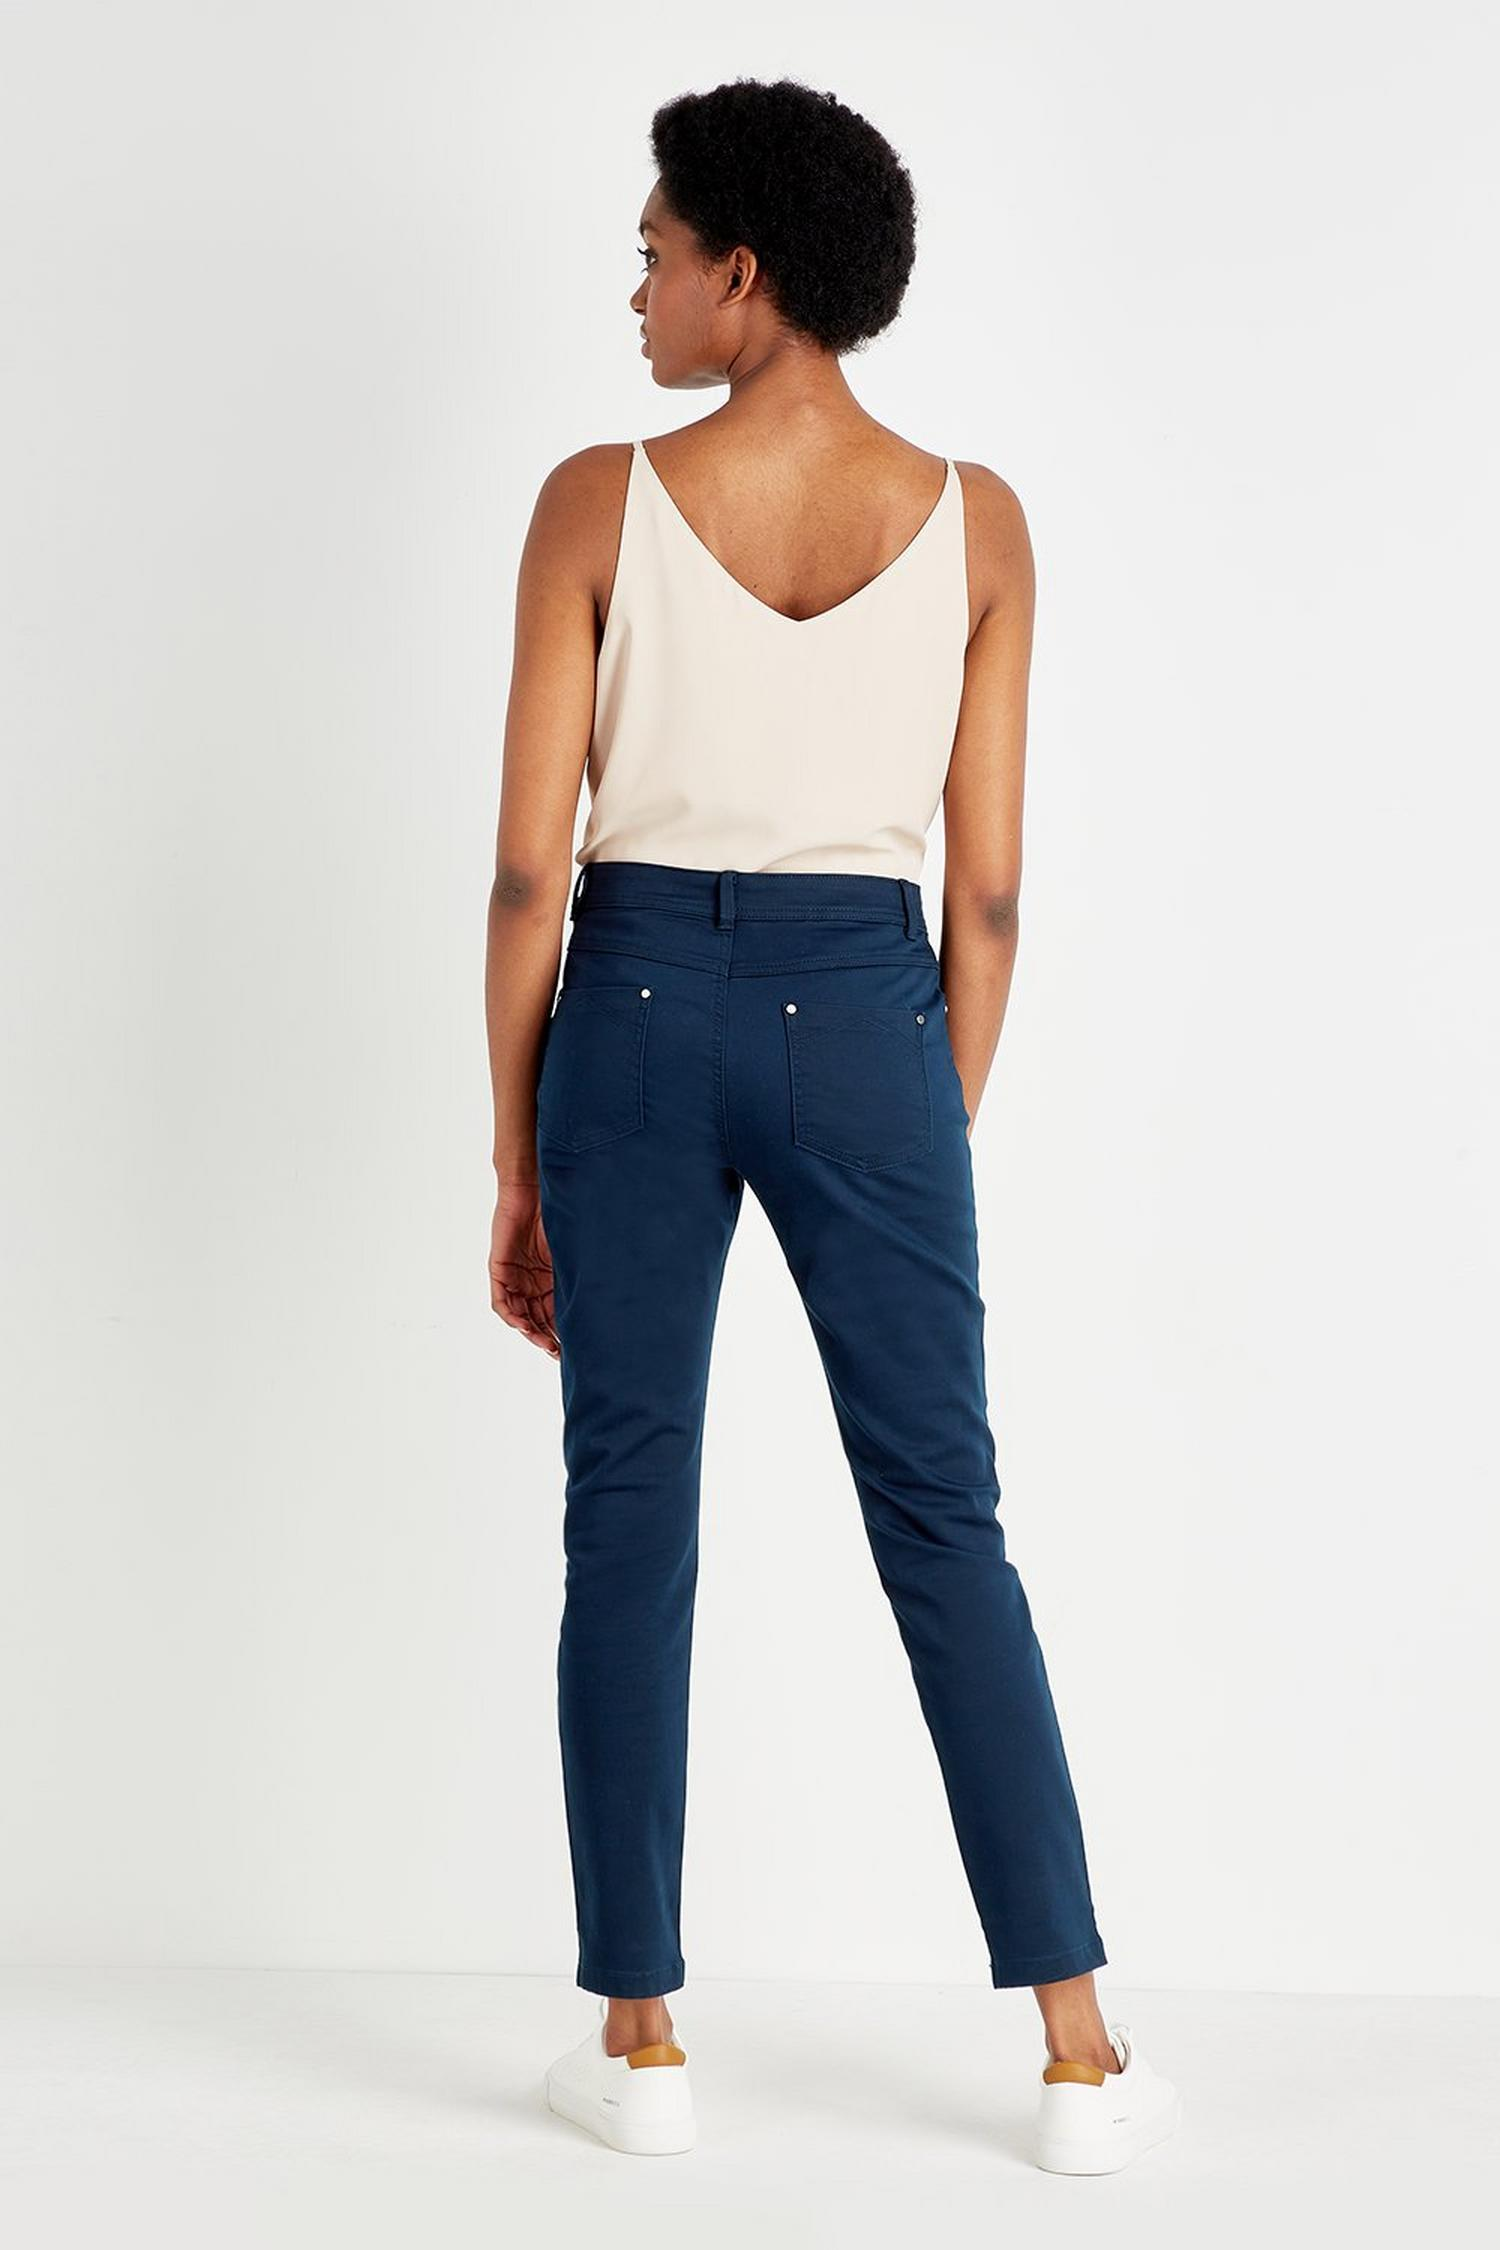 148 Navy Slim Leg Trousers image number 3